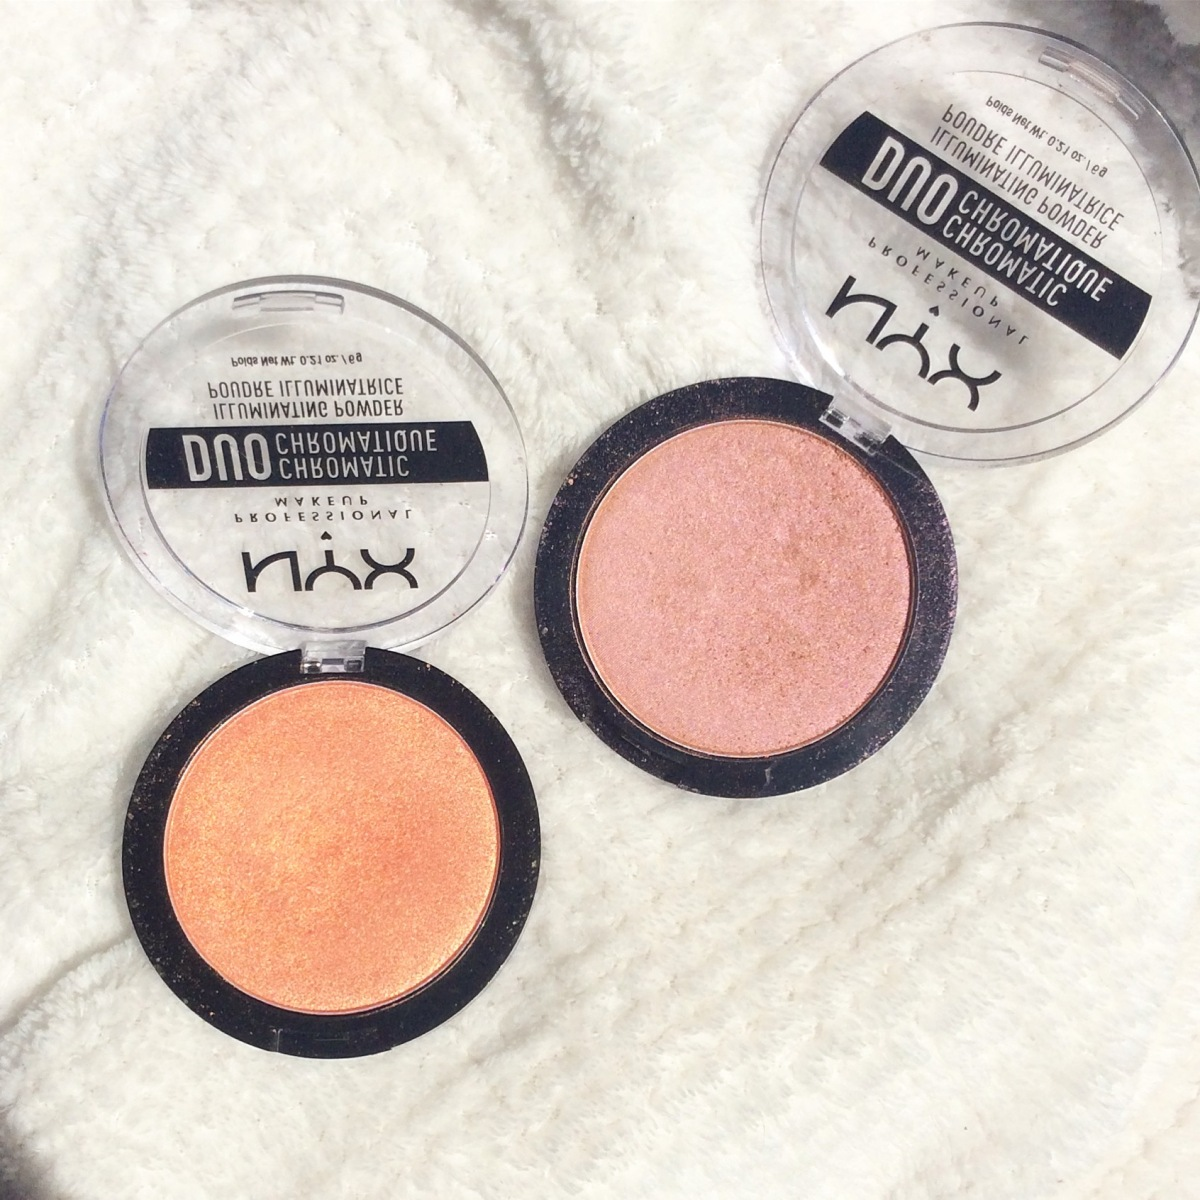 ~Review~ NYX Duo Chromatic Illuminating Powder - Crushed Bloom & Synthetica